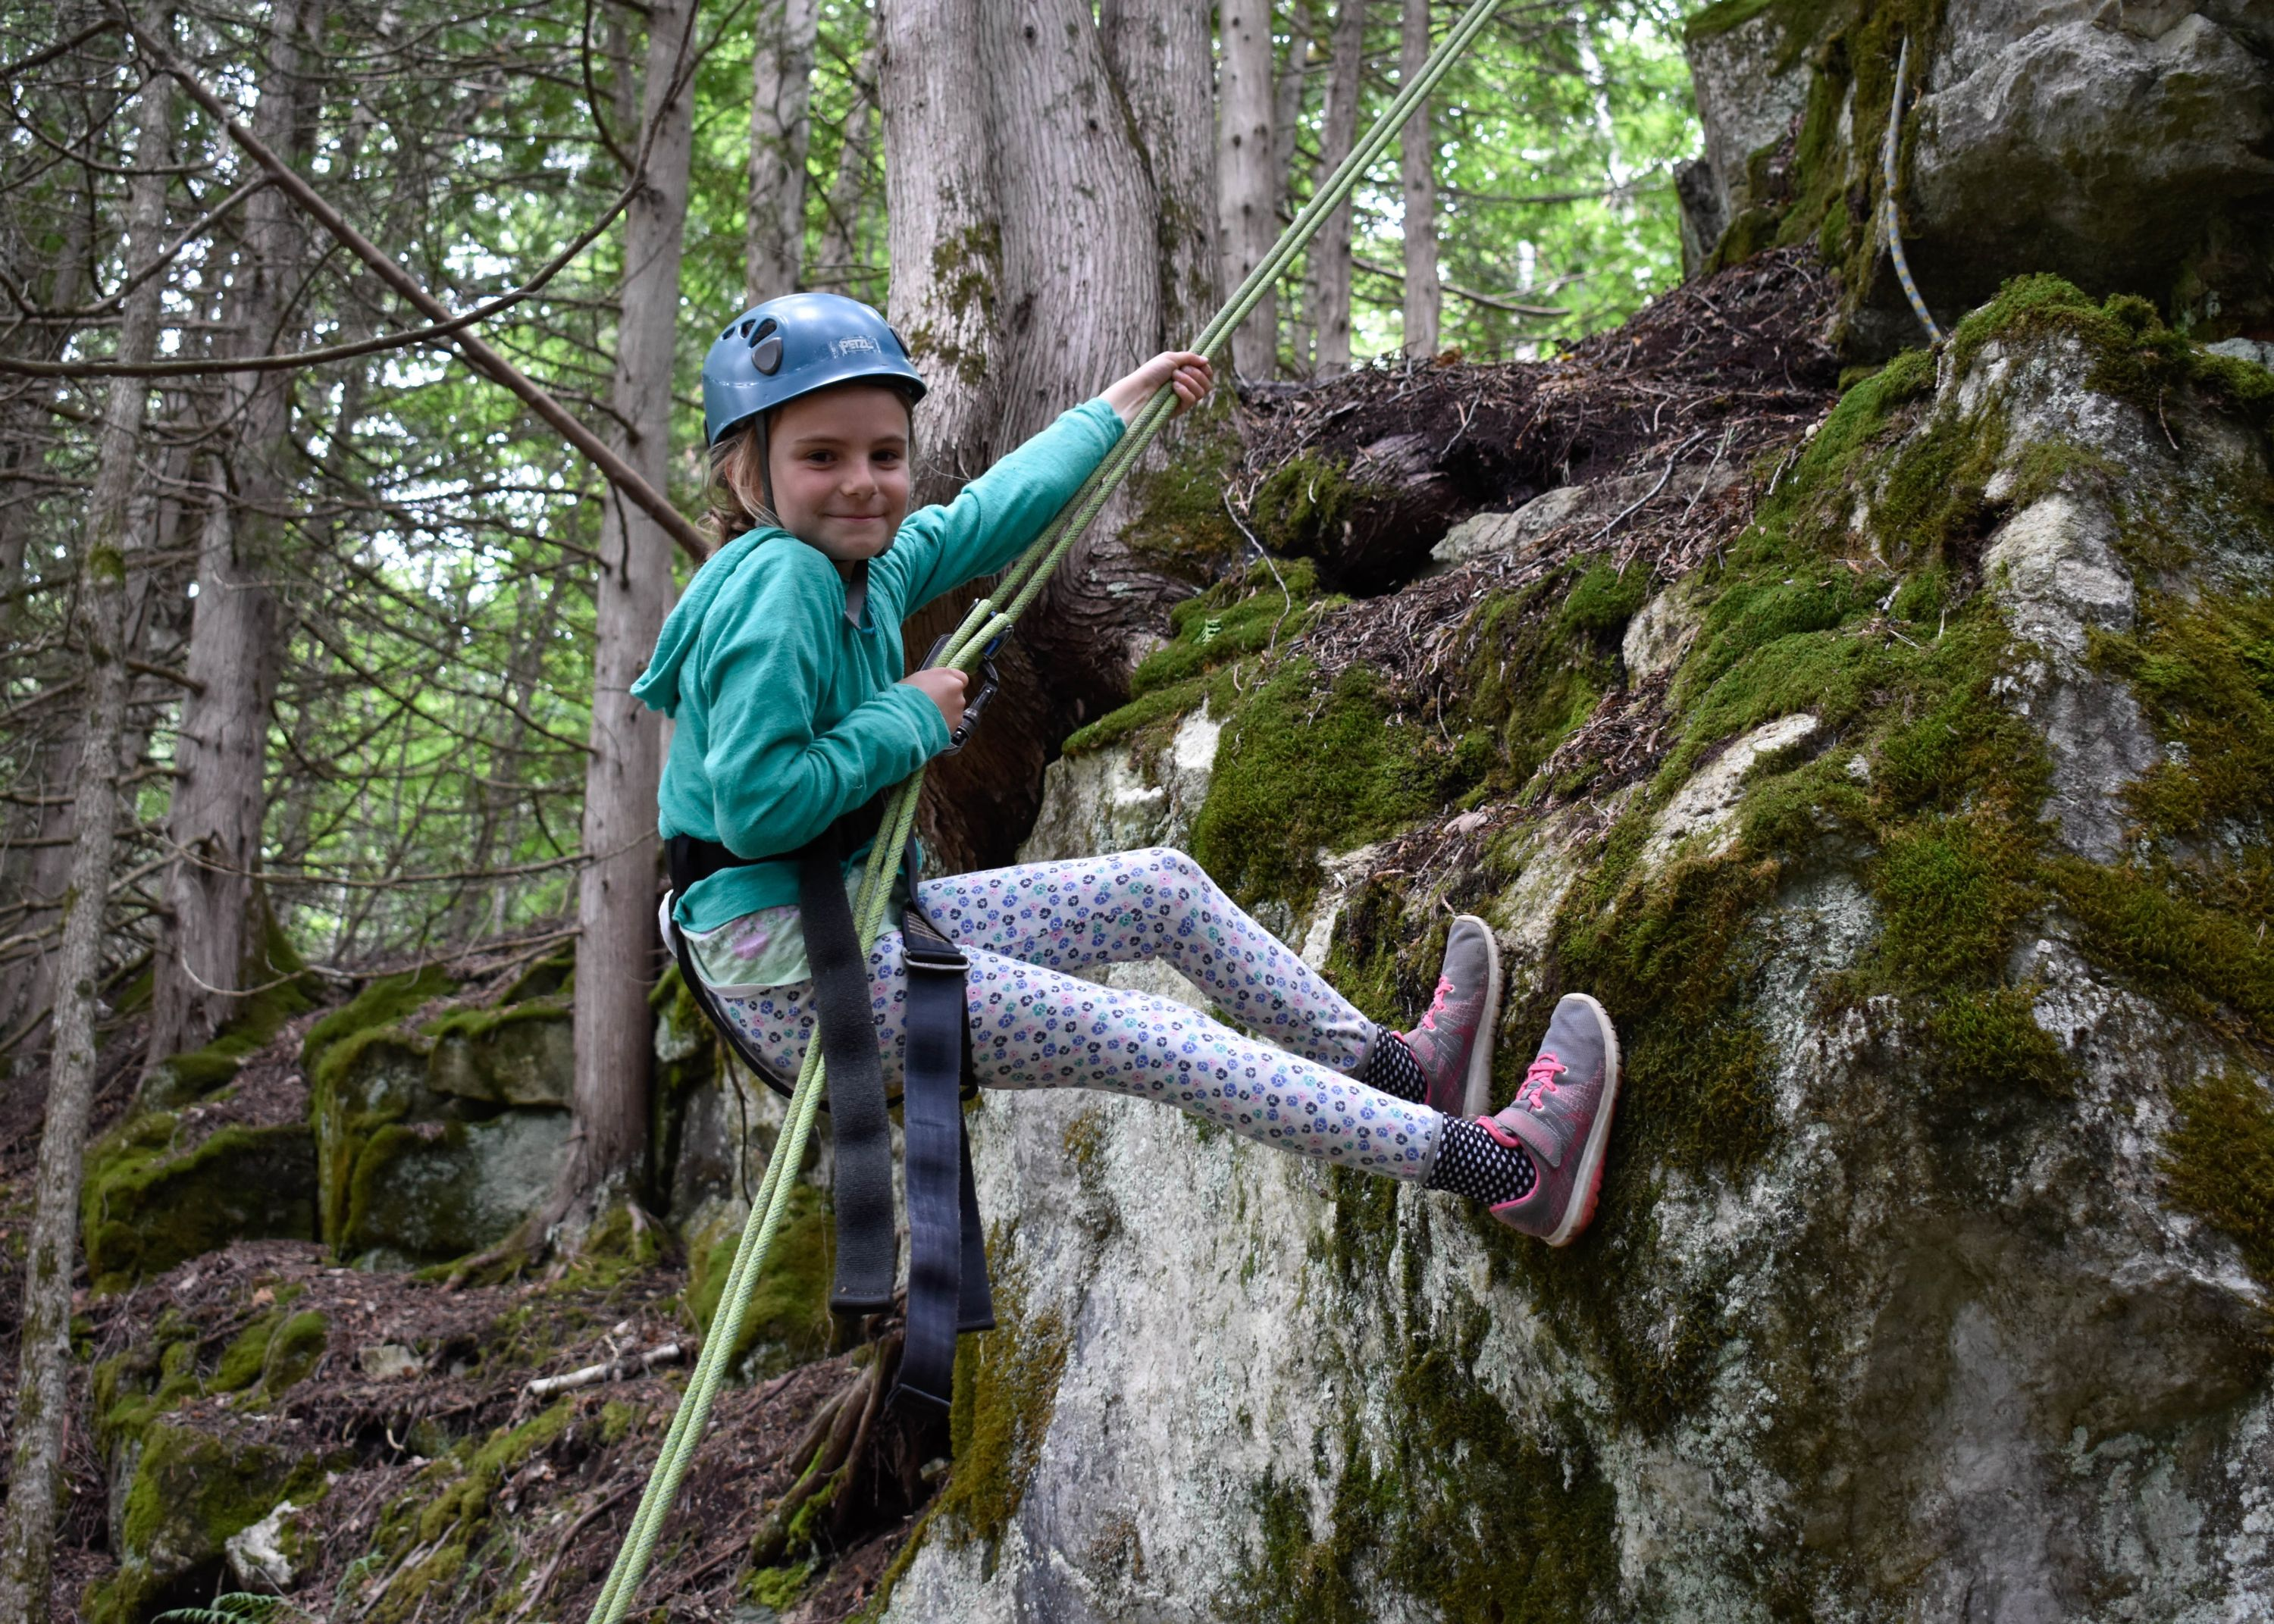 Climber repelling on rock surface for climbing club at christian adventure summer camp in Haliburton, Ontario